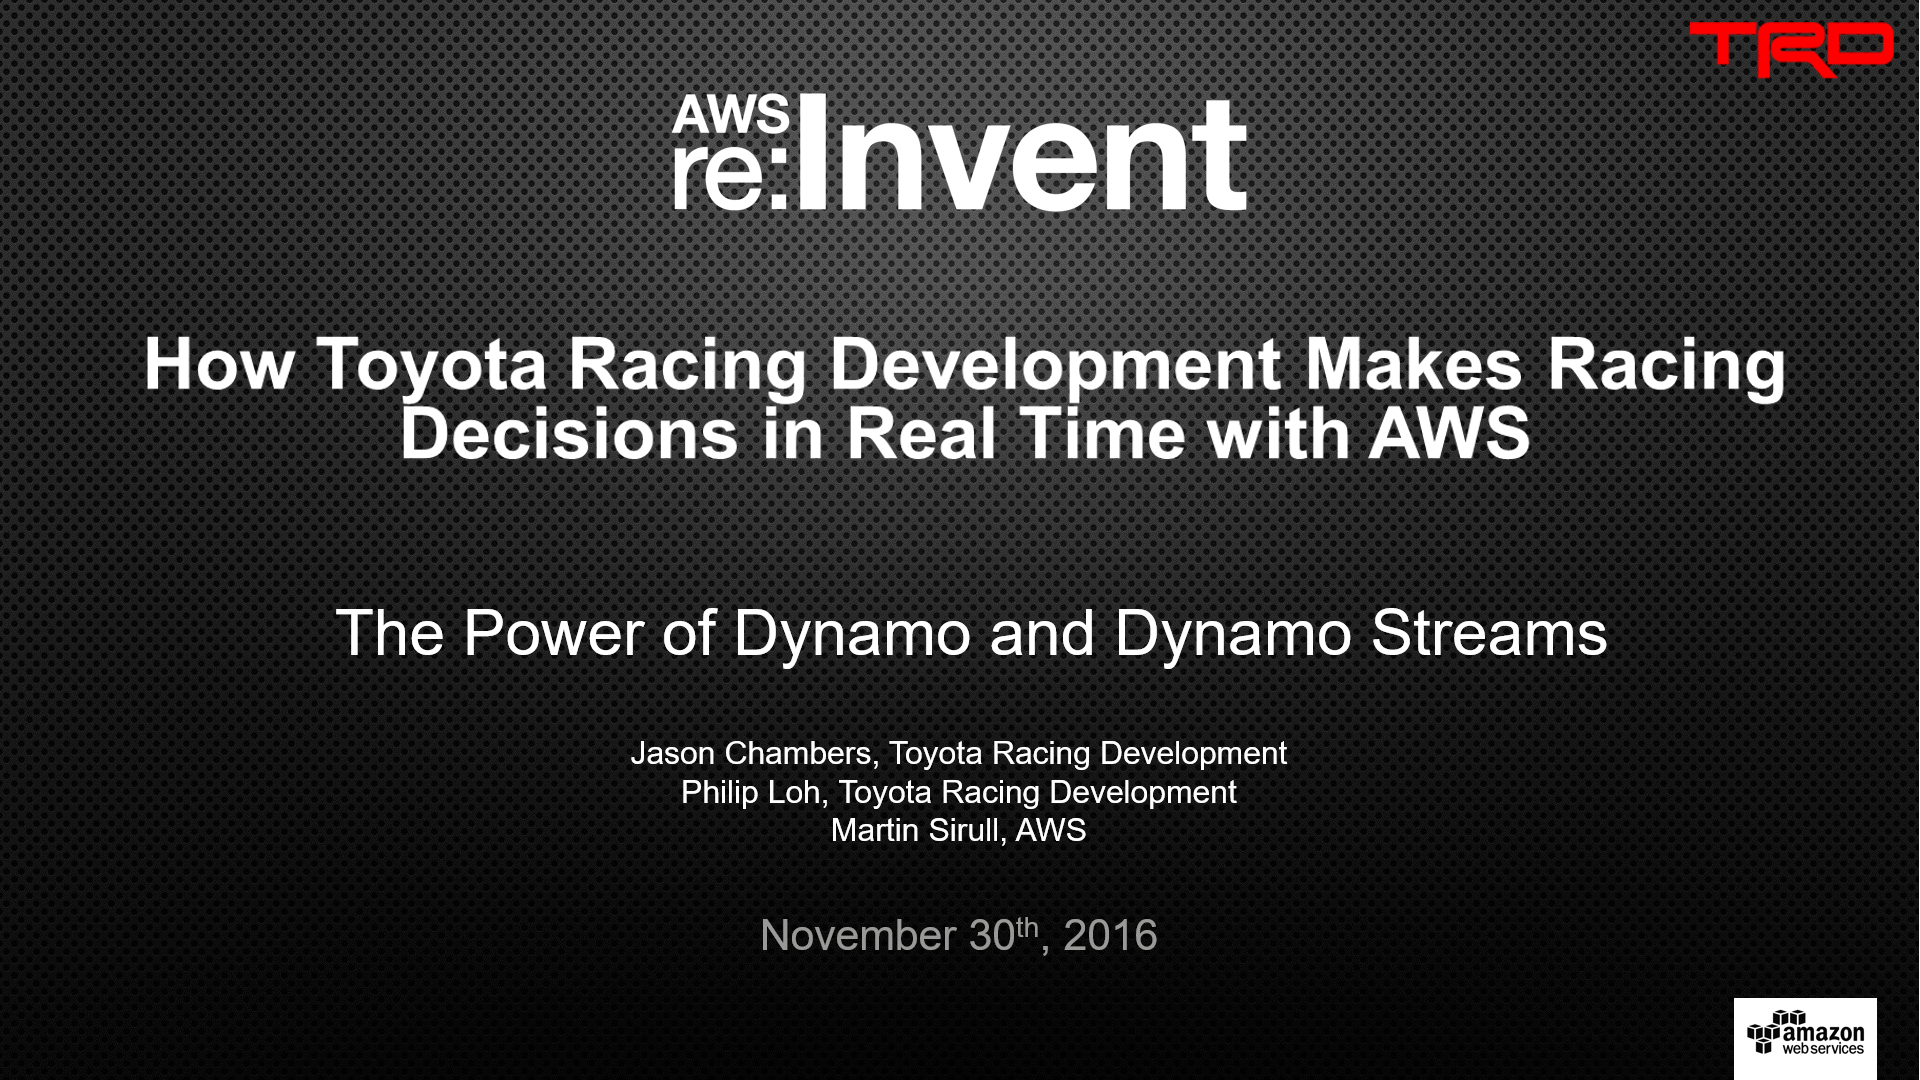 DAT311 How Toyota Racing Development Makes Racing Decisions in Real Time with AWS